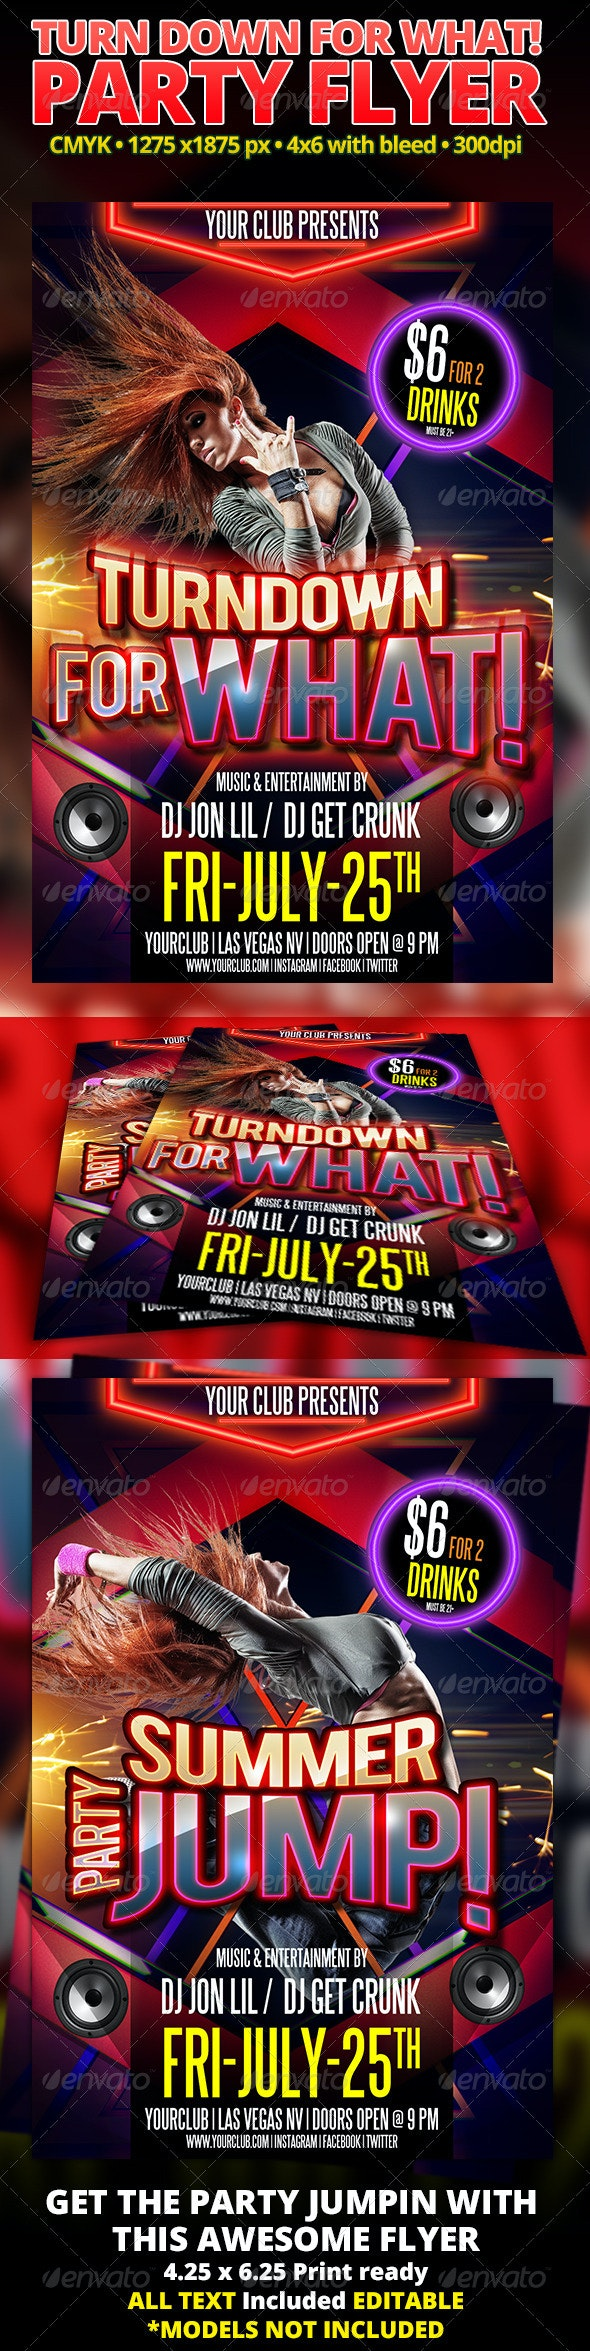 Turn Down For What! Party Flyer - Clubs & Parties Events